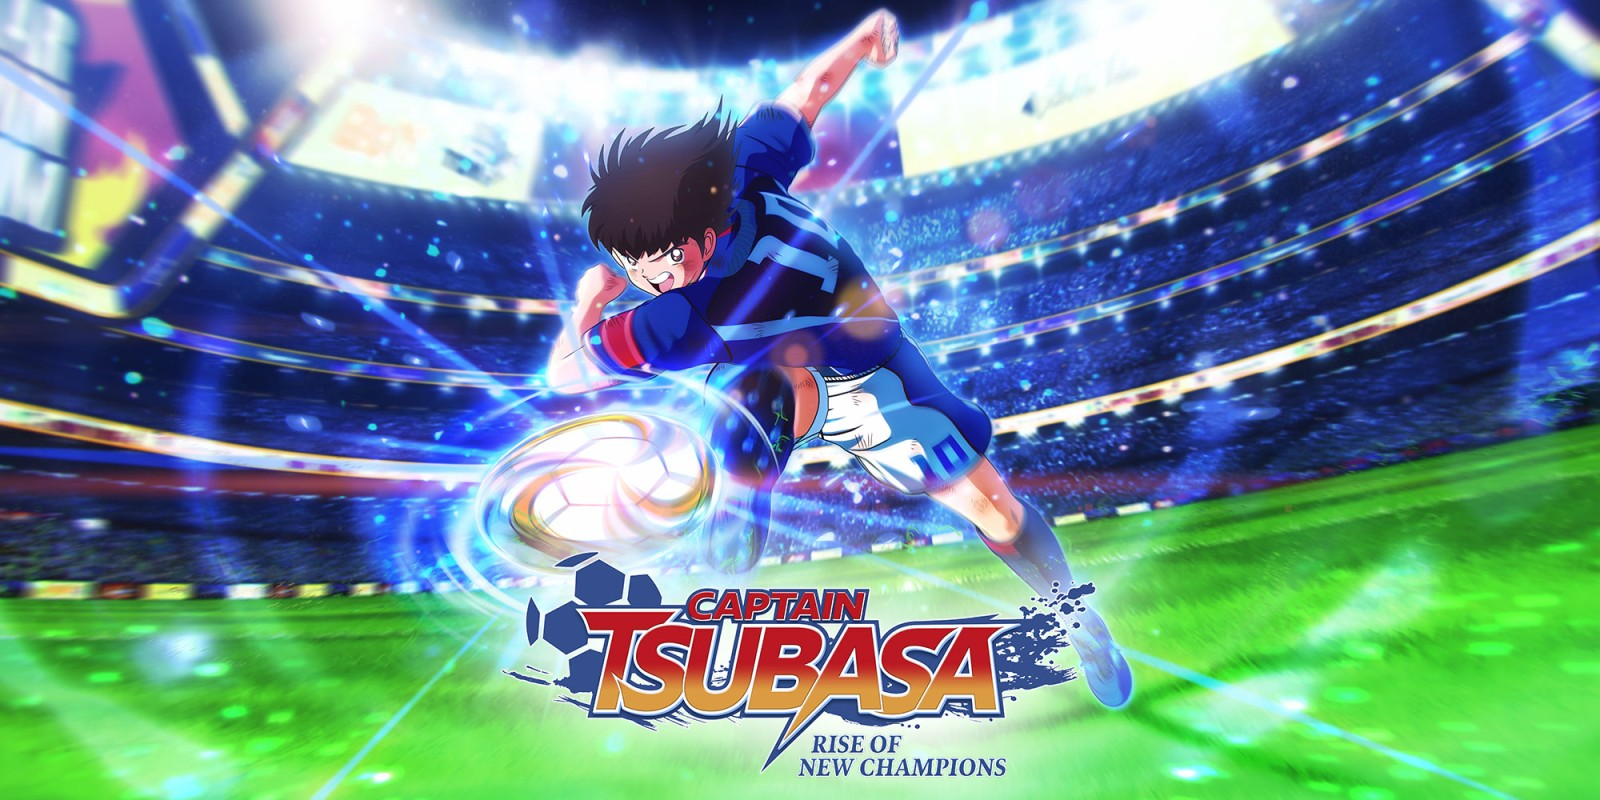 Captain Tsubasa: Rise of New Champions H2x1_NSwitch_CaptainTsubasaRiseOfNewChampions_image1600w